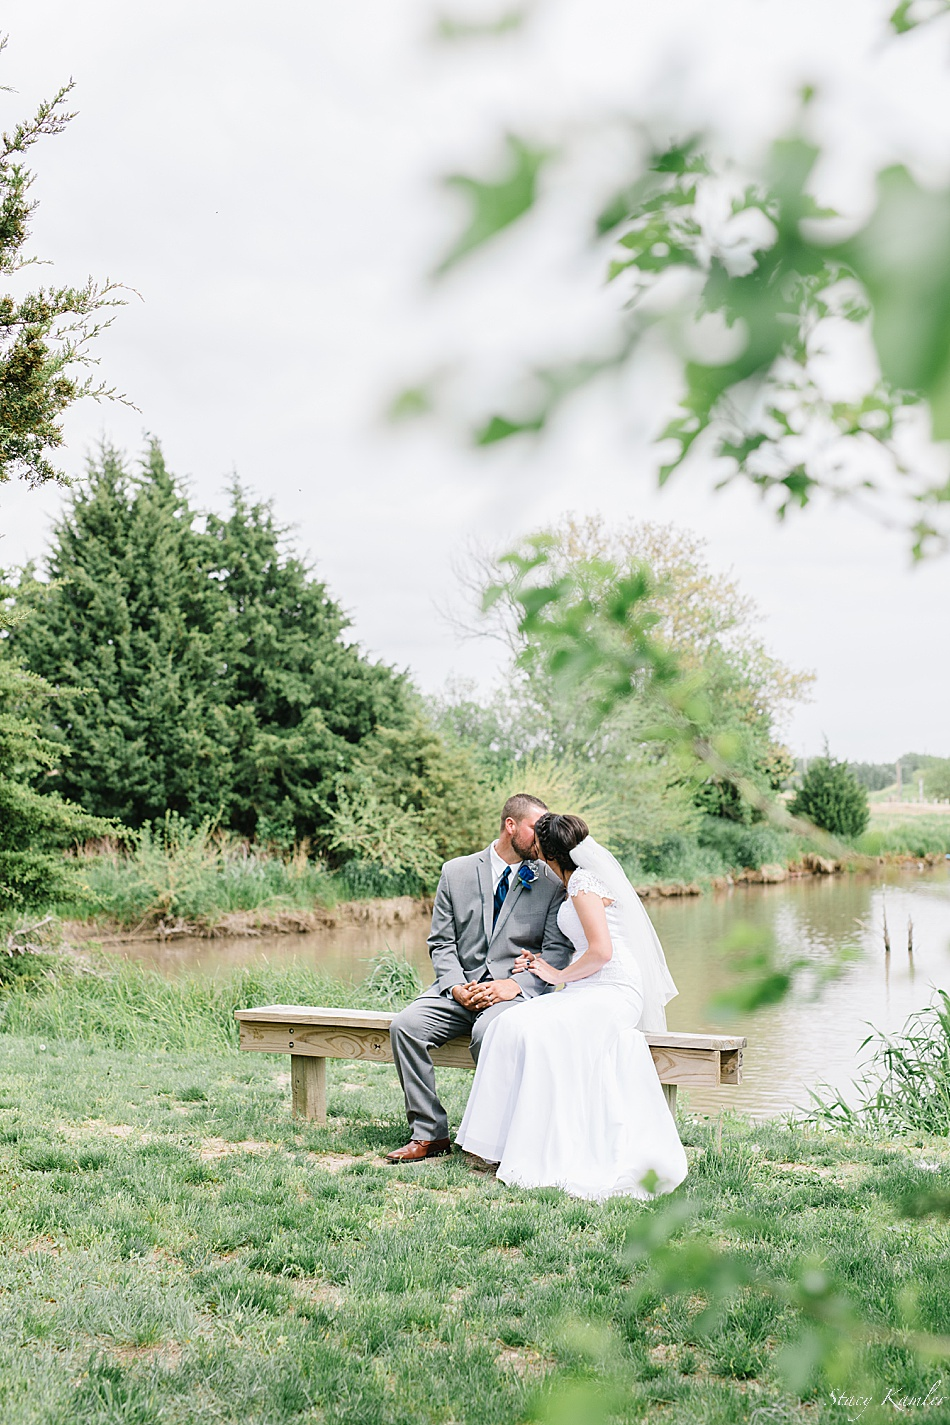 Bride and Groom sitting on bench by lake for wedding day portraits